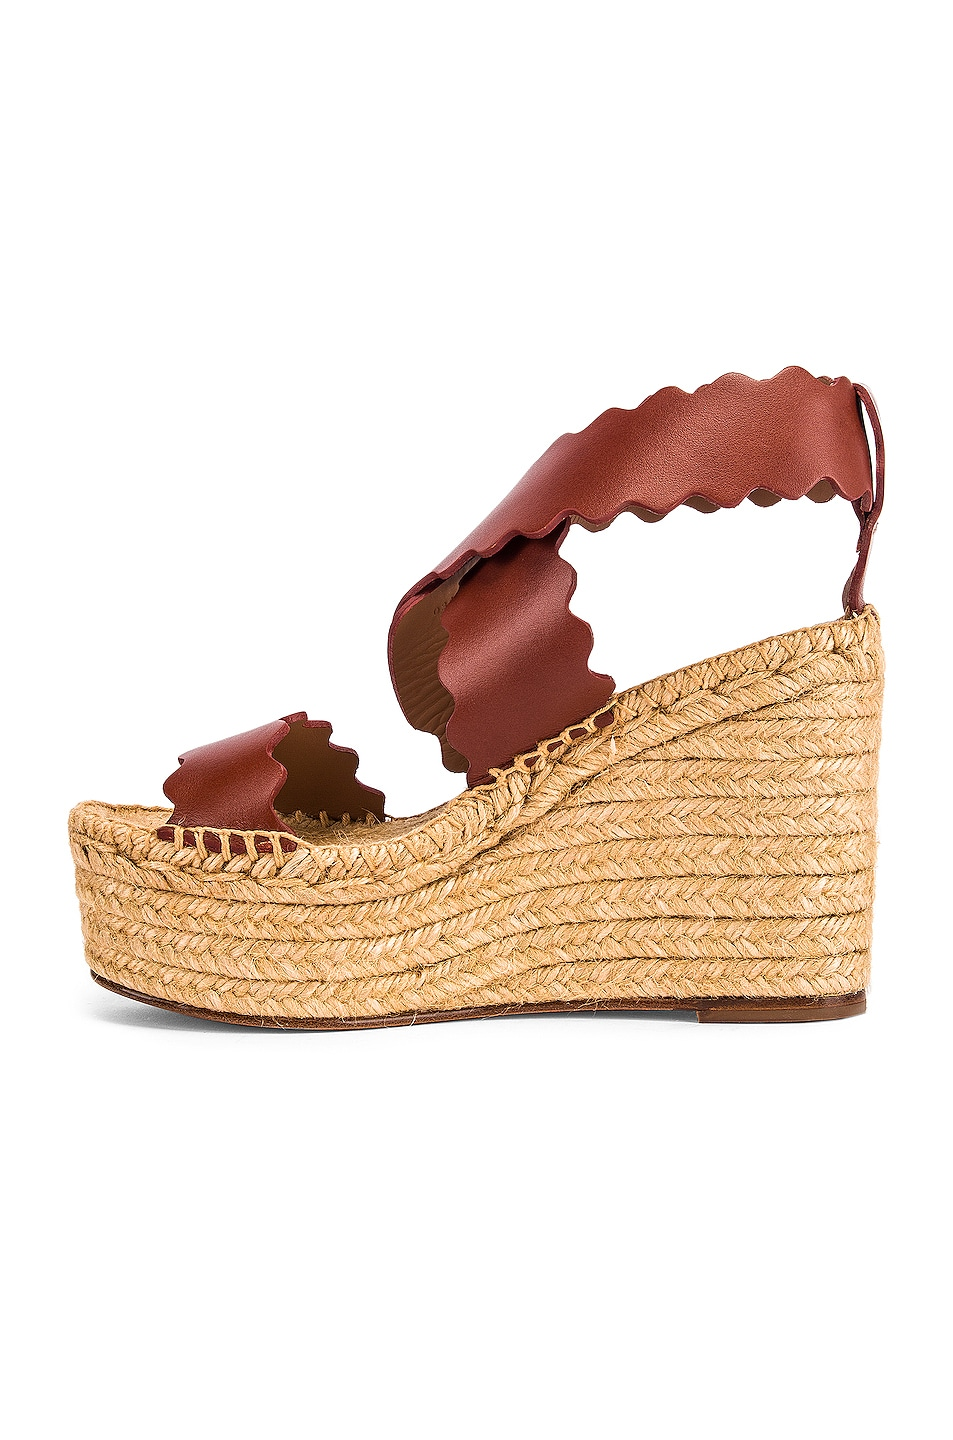 Image 5 of Chloe Leather Wedges in Sepia Brown